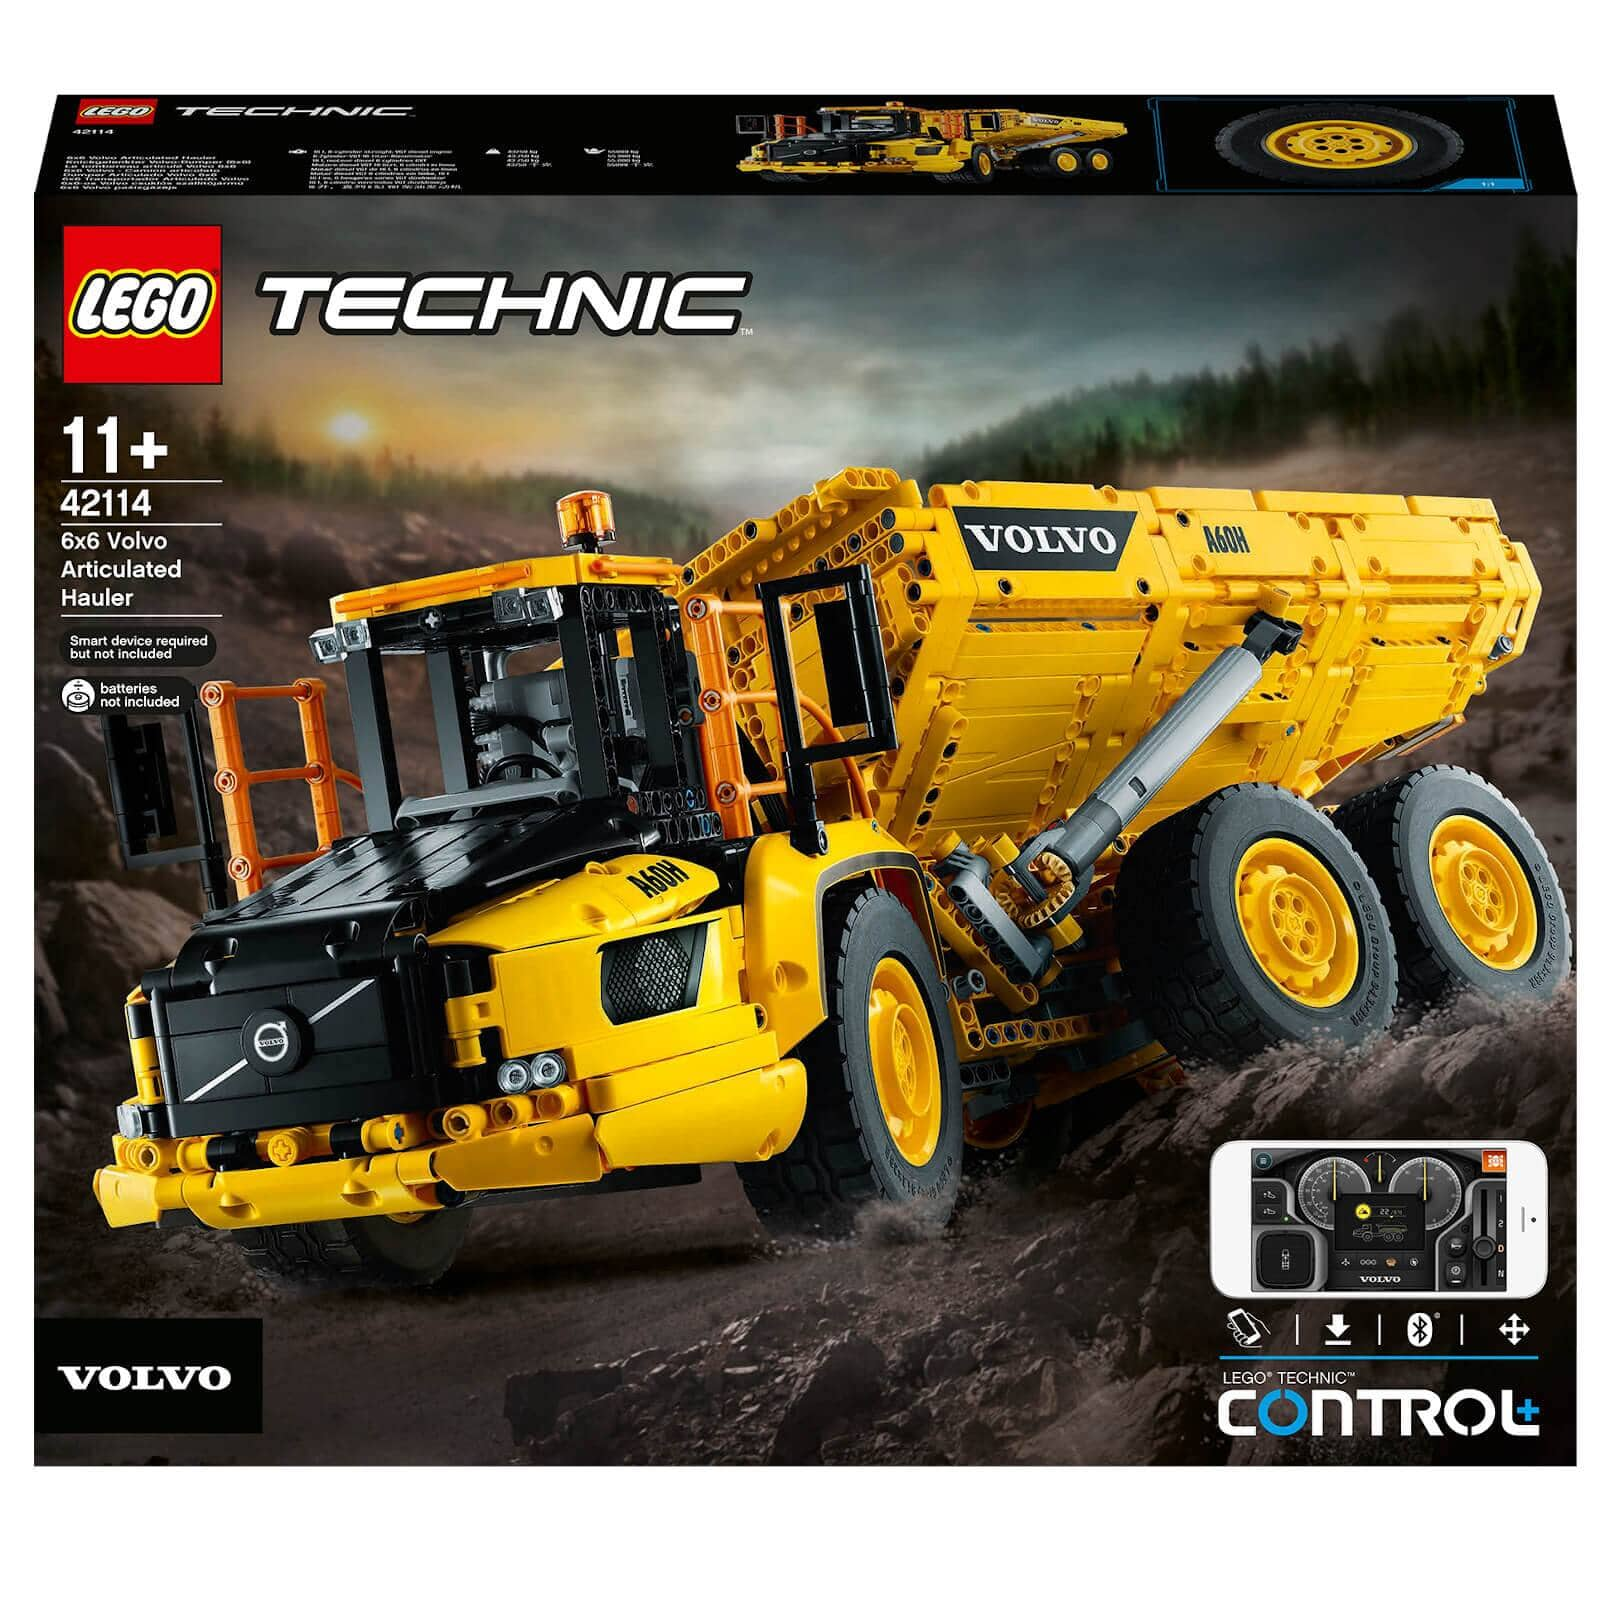 LEGO Technic: 6x6 Volvo Articulated Hauler RC Truck (42114) $214.99 with Free Shipping